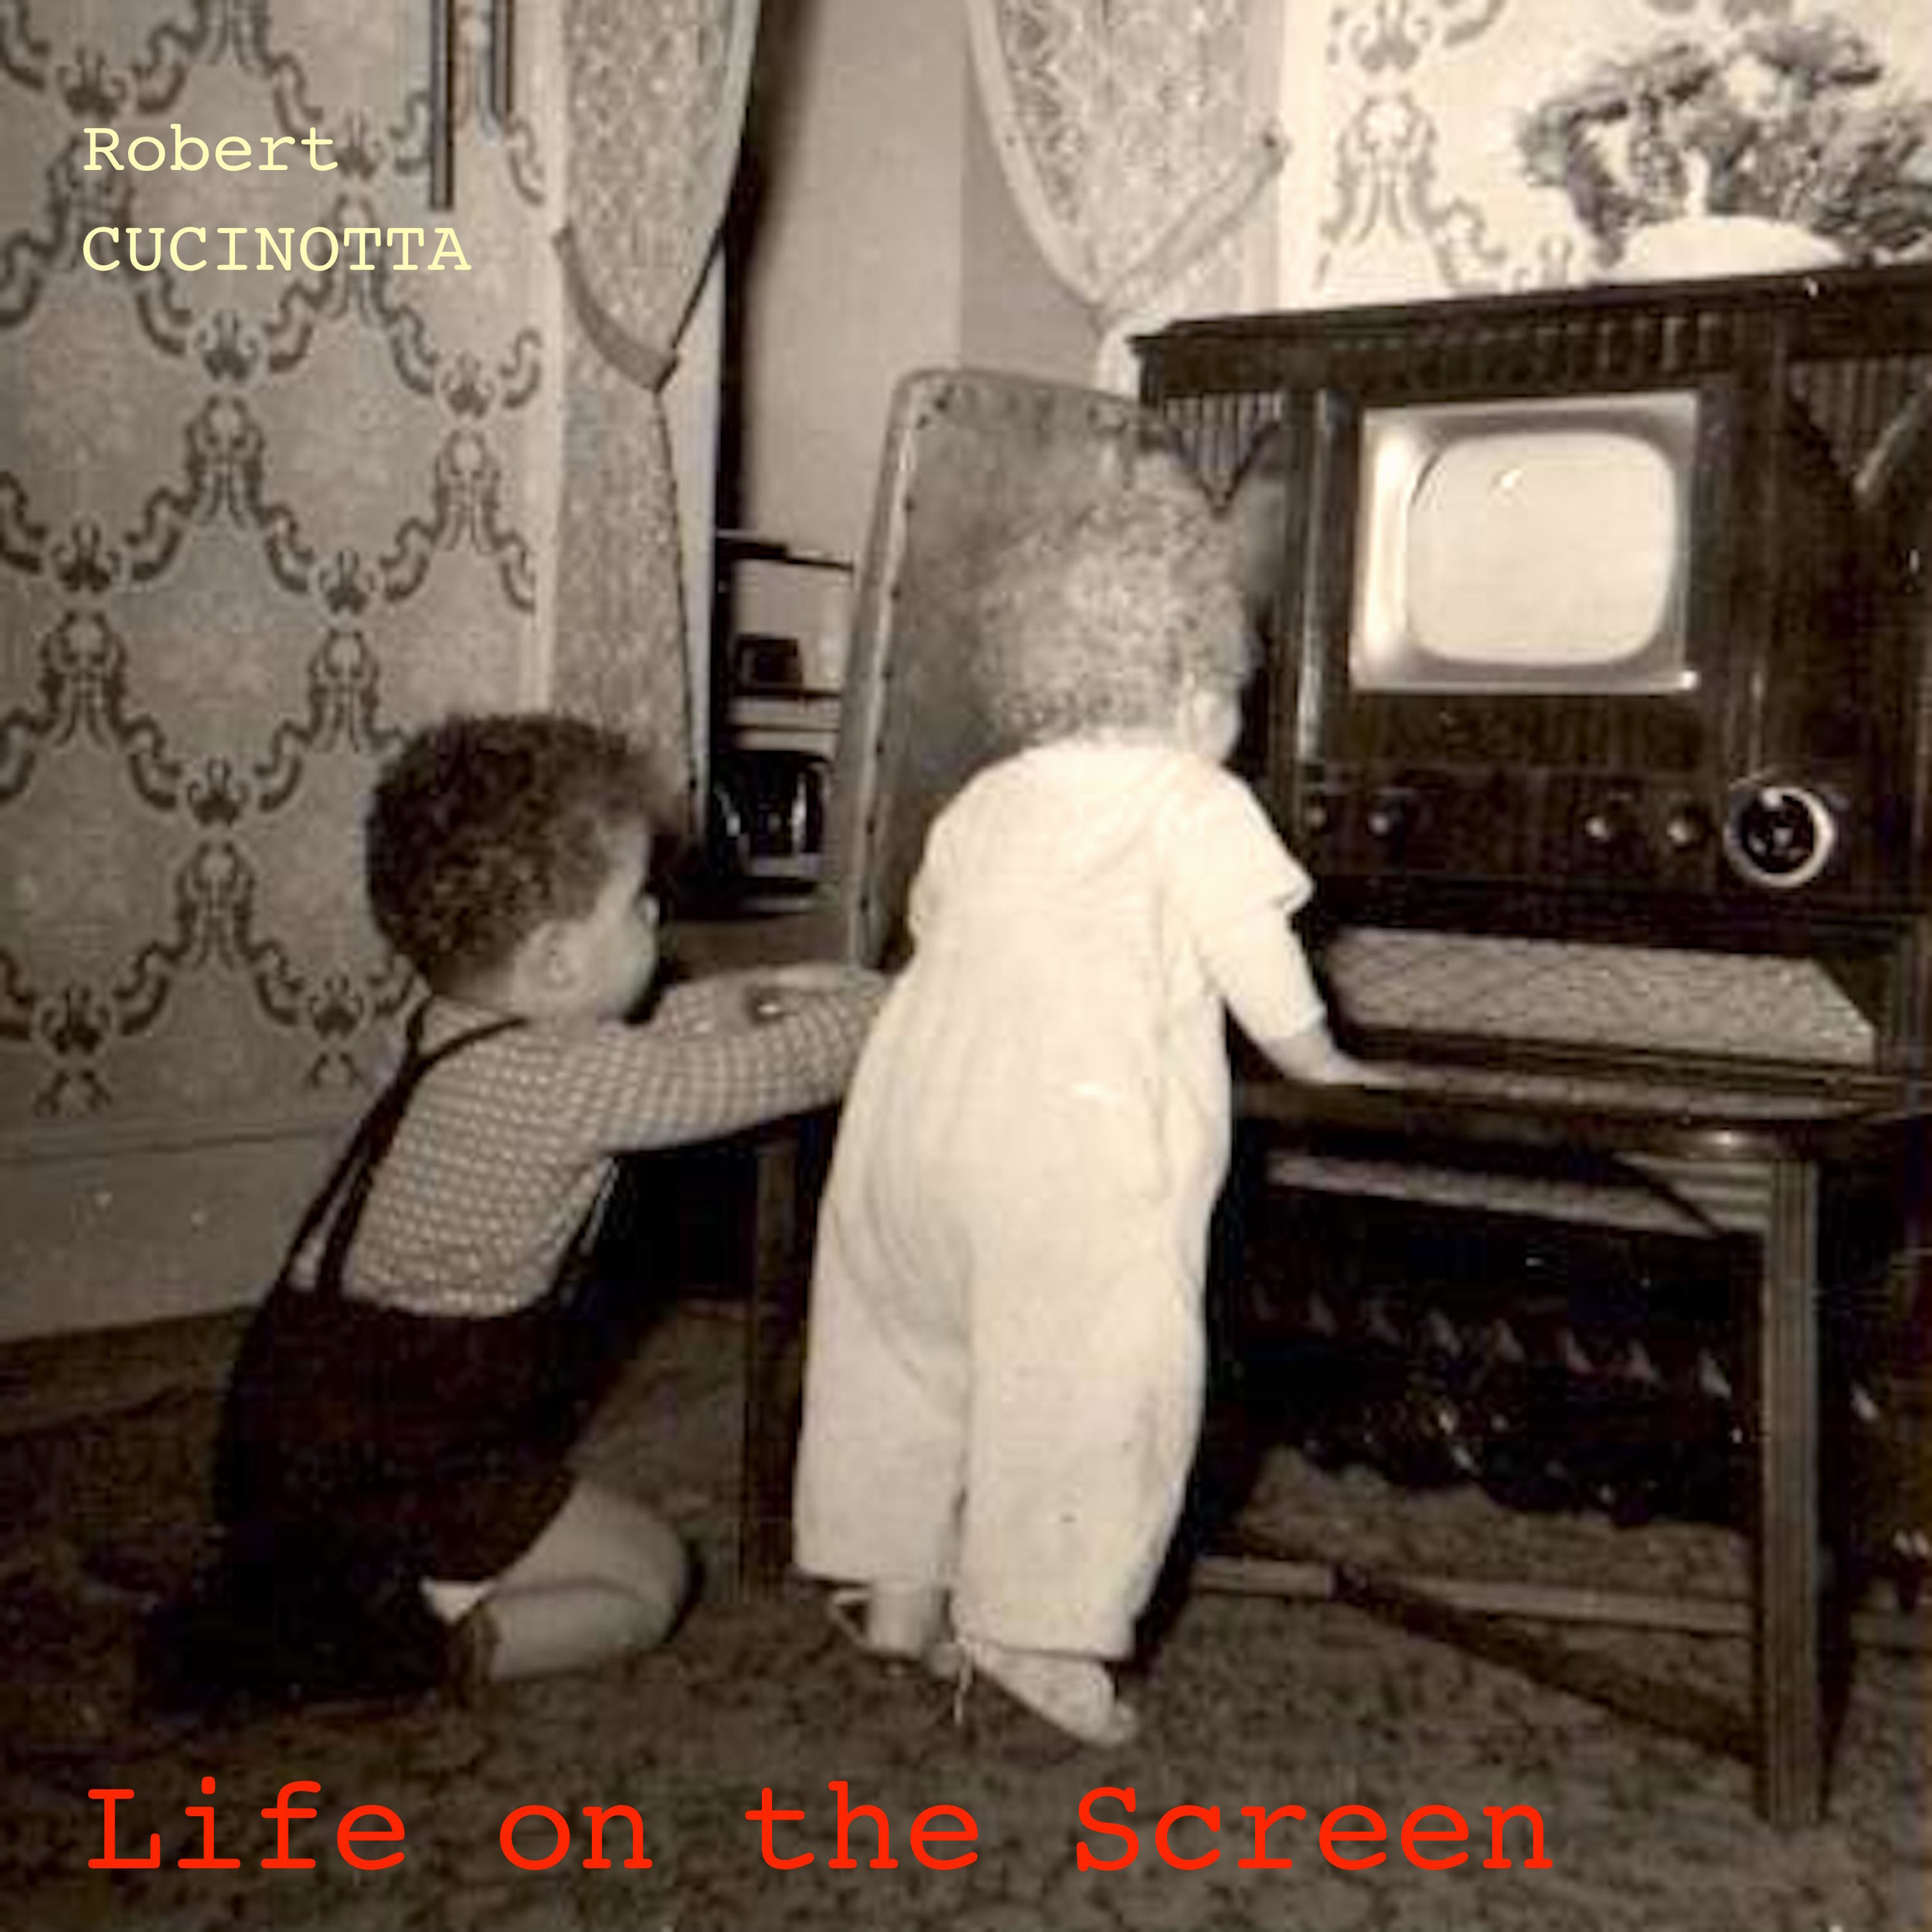 My brother and I watching TV in the early fifties.